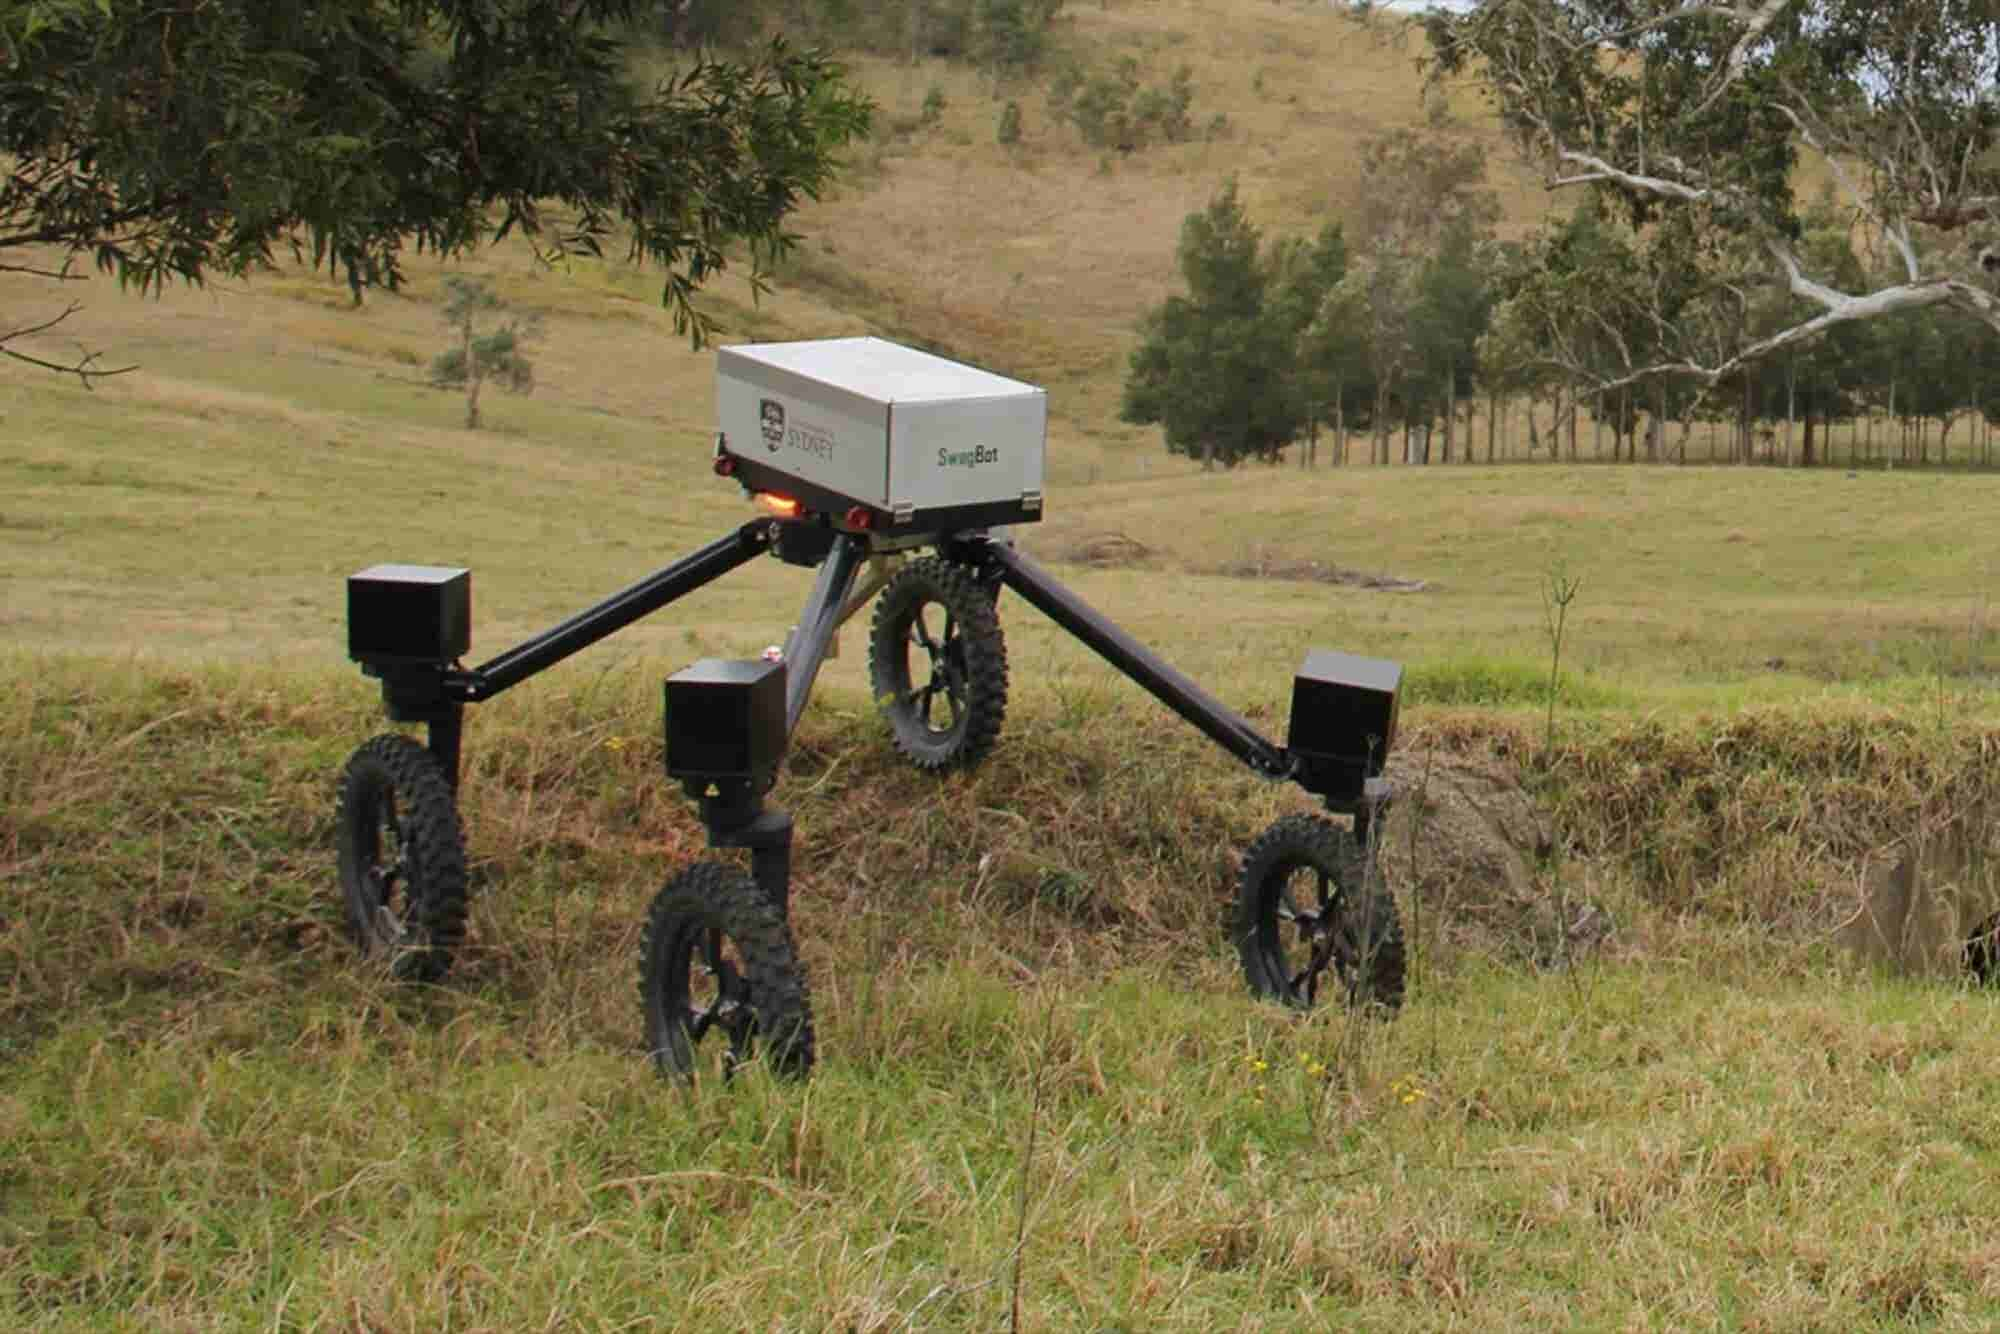 No Bull! This Robot Could Put Cowboys Out of Work.